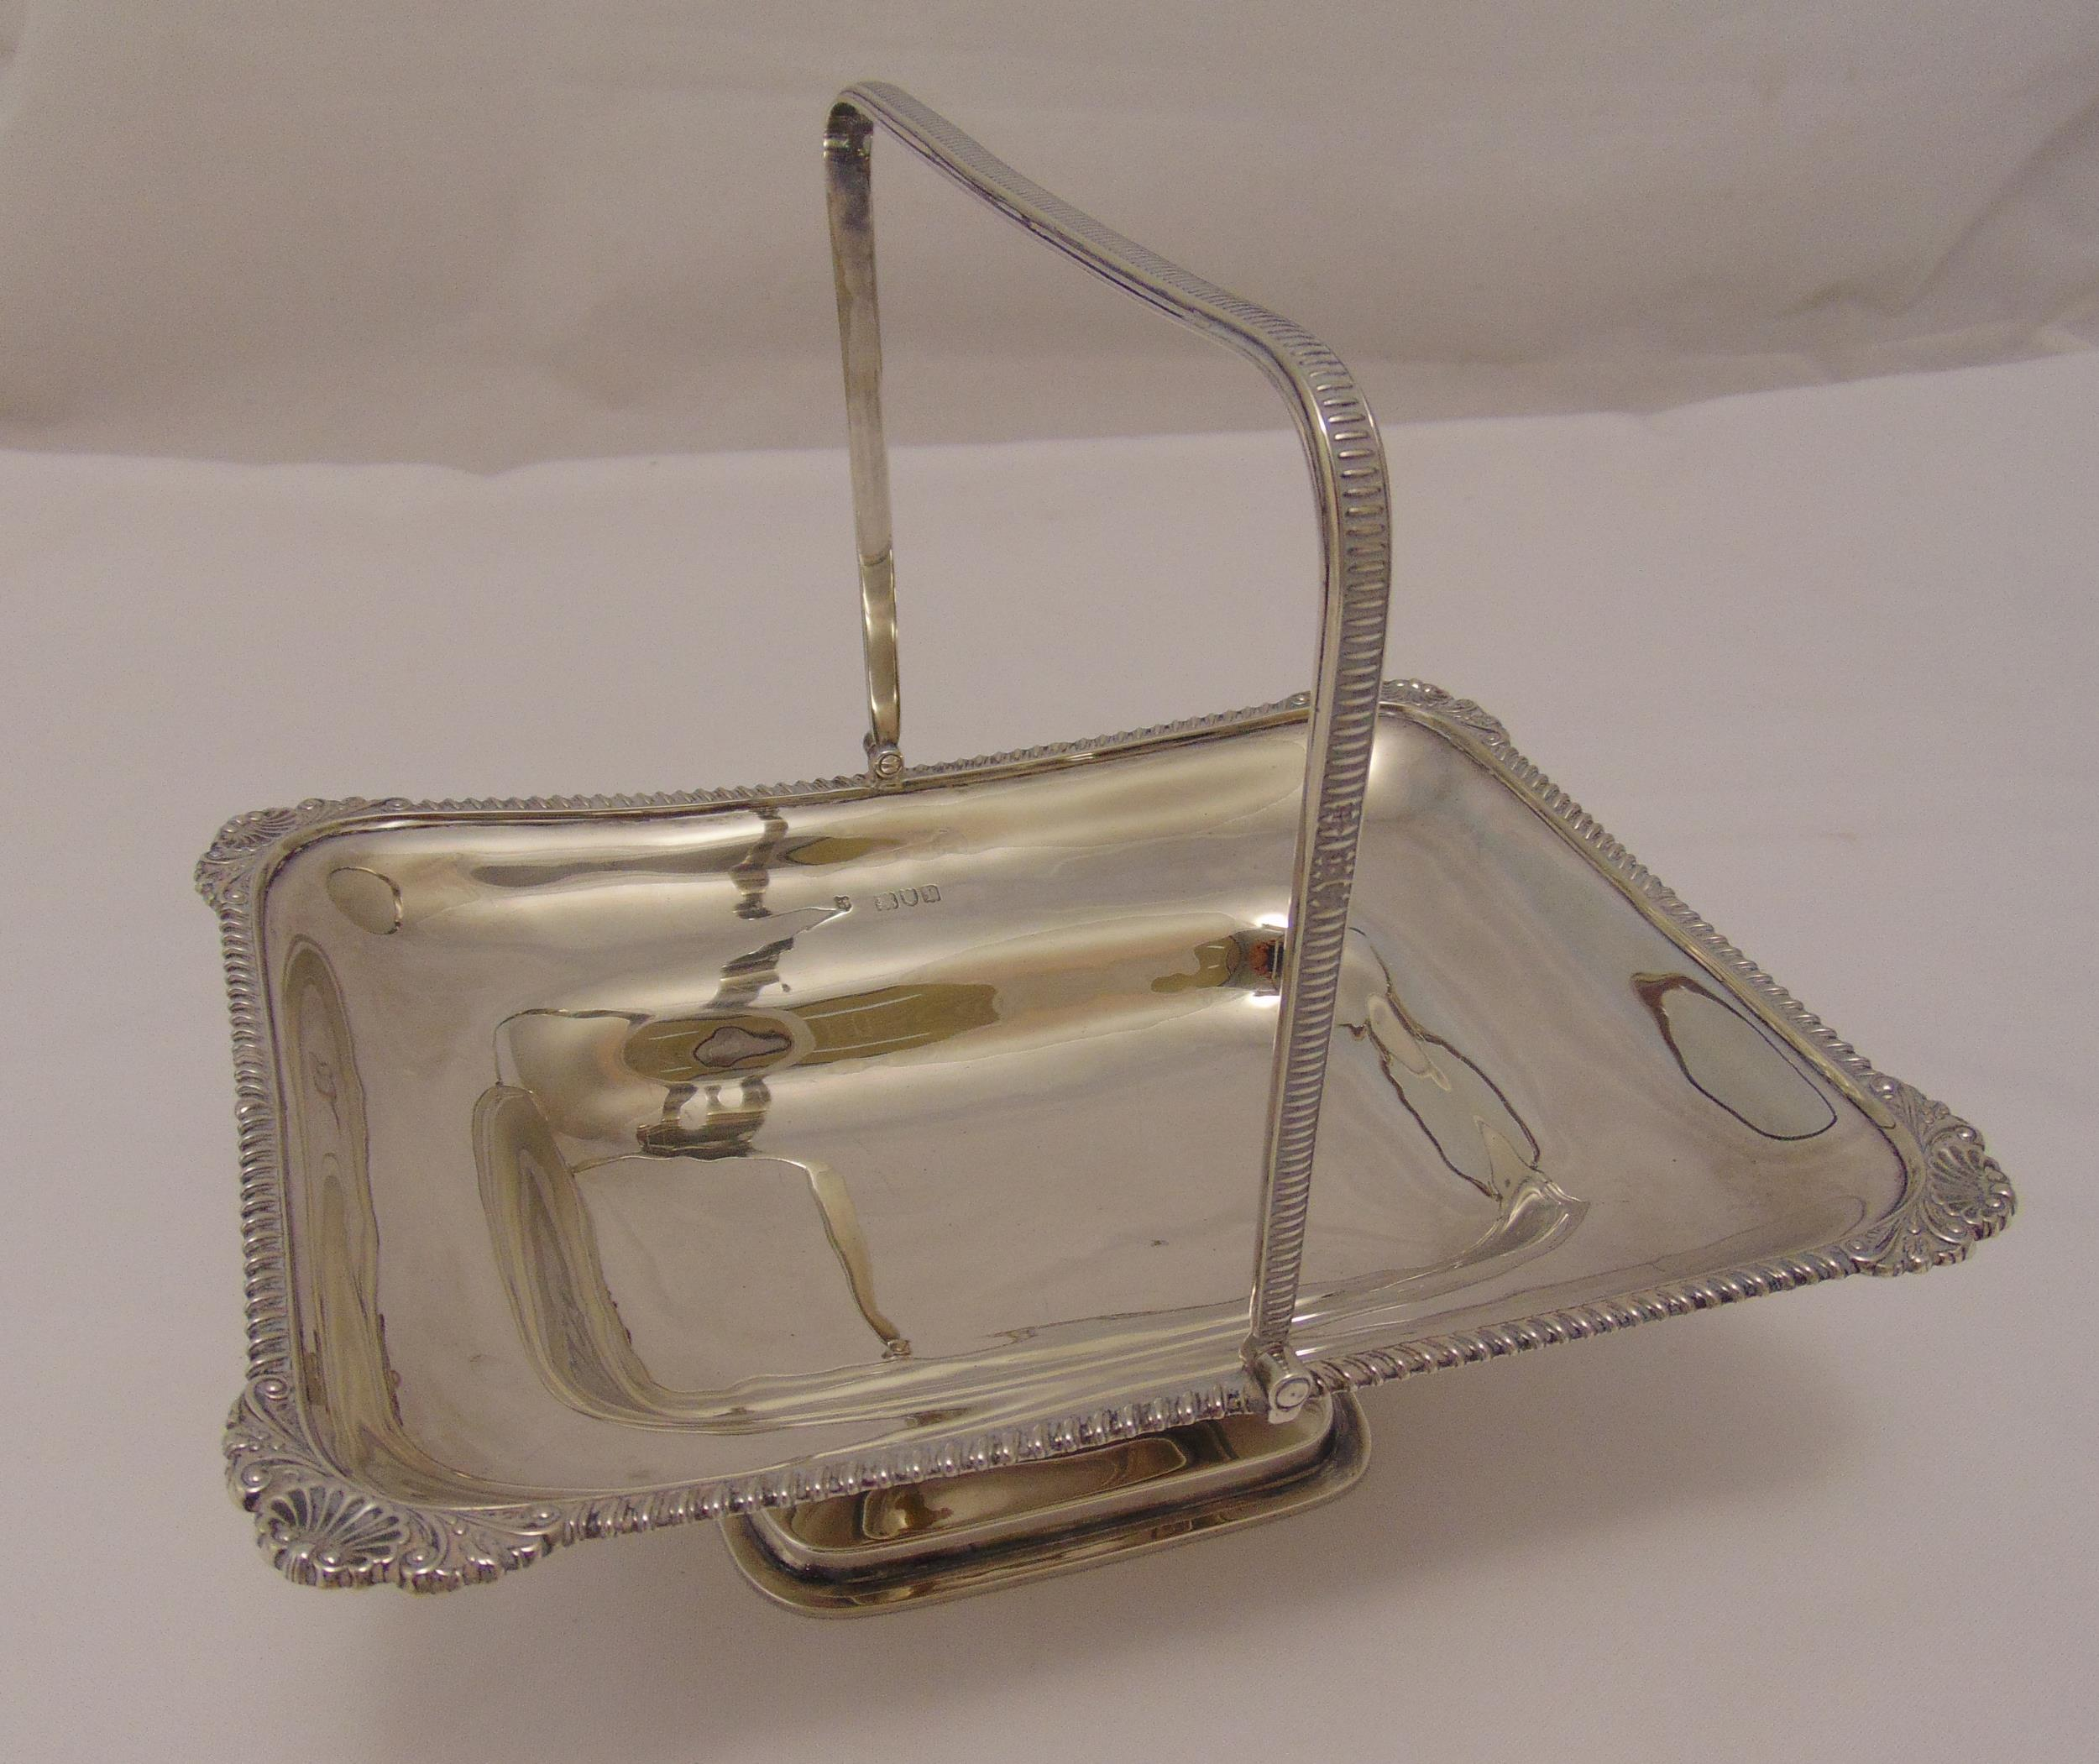 A hallmarked silver fruit basket rounded rectangular, gadroon and shell border with swing handle